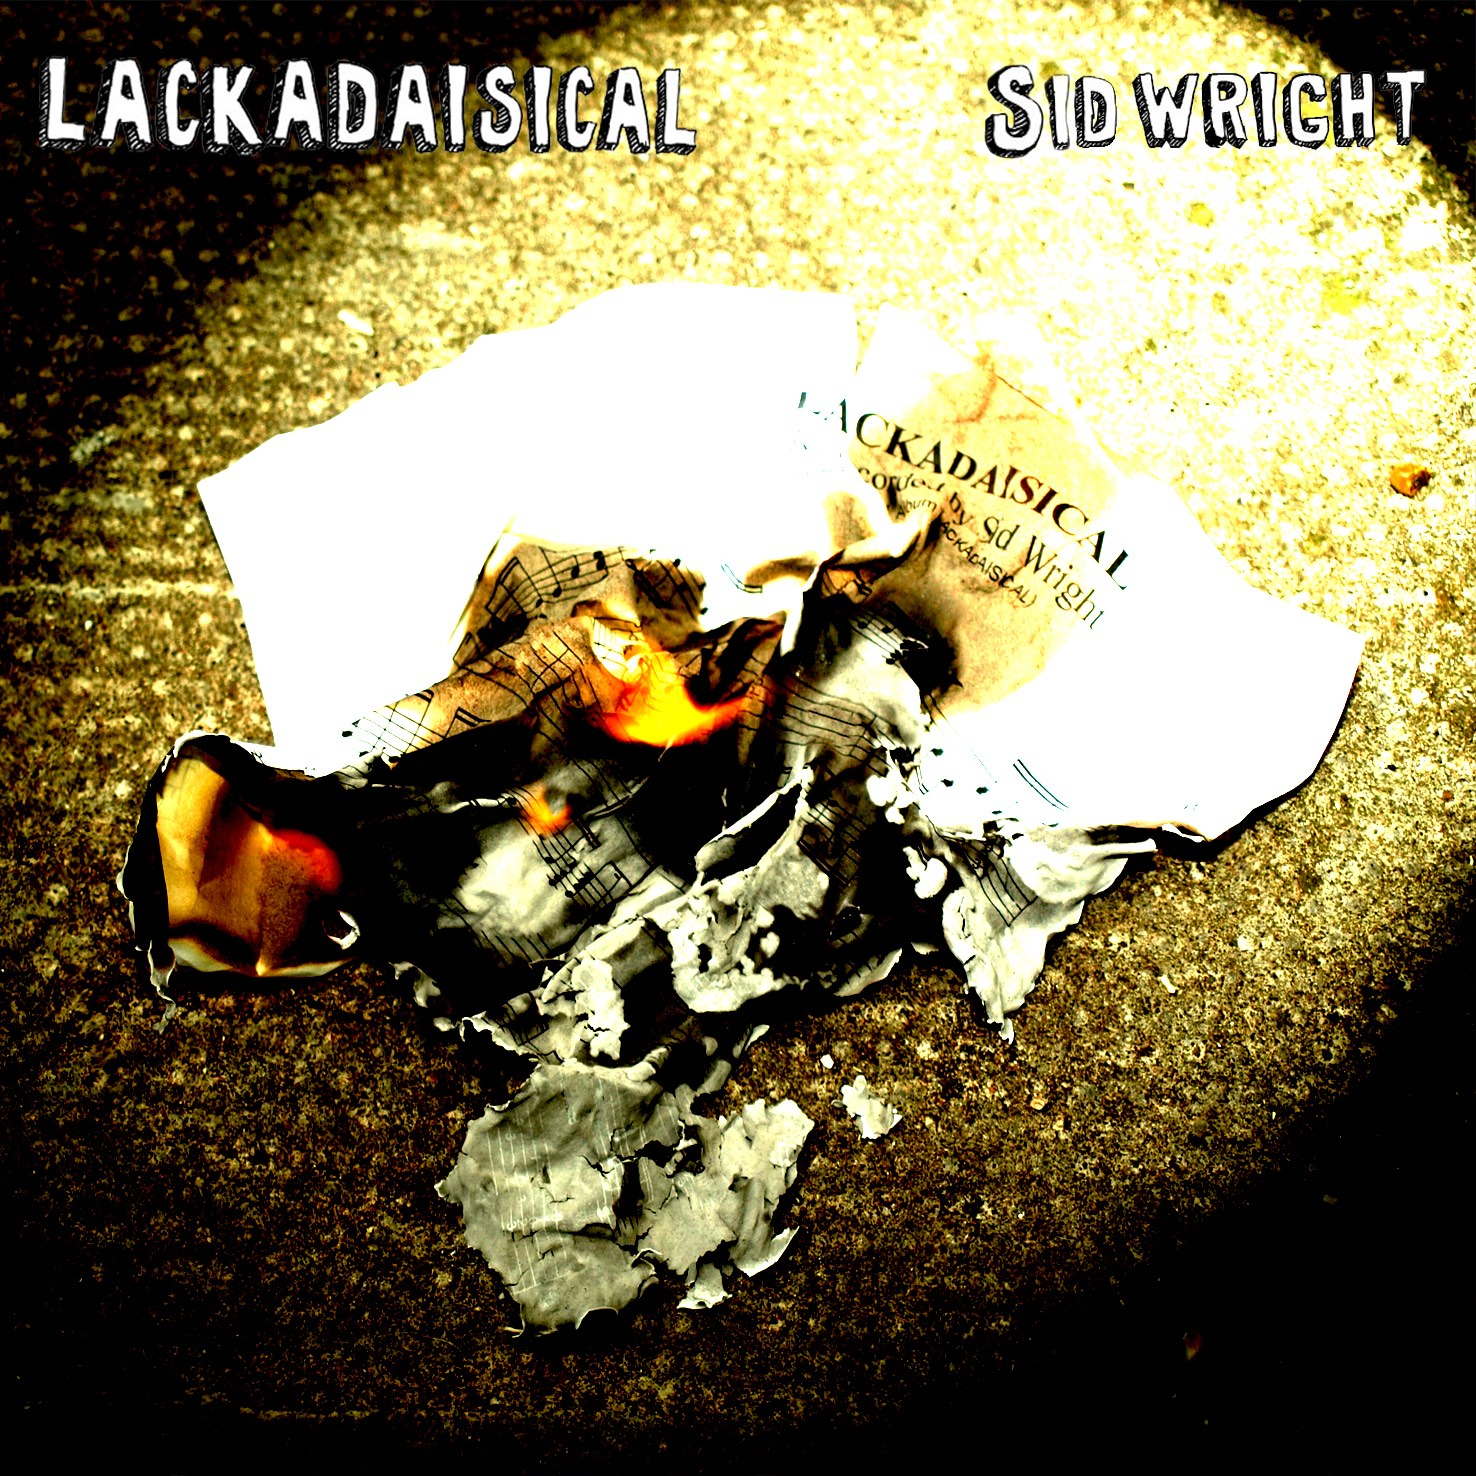 Lackadaisical album cover by Sid Wright sidwright.co.uk